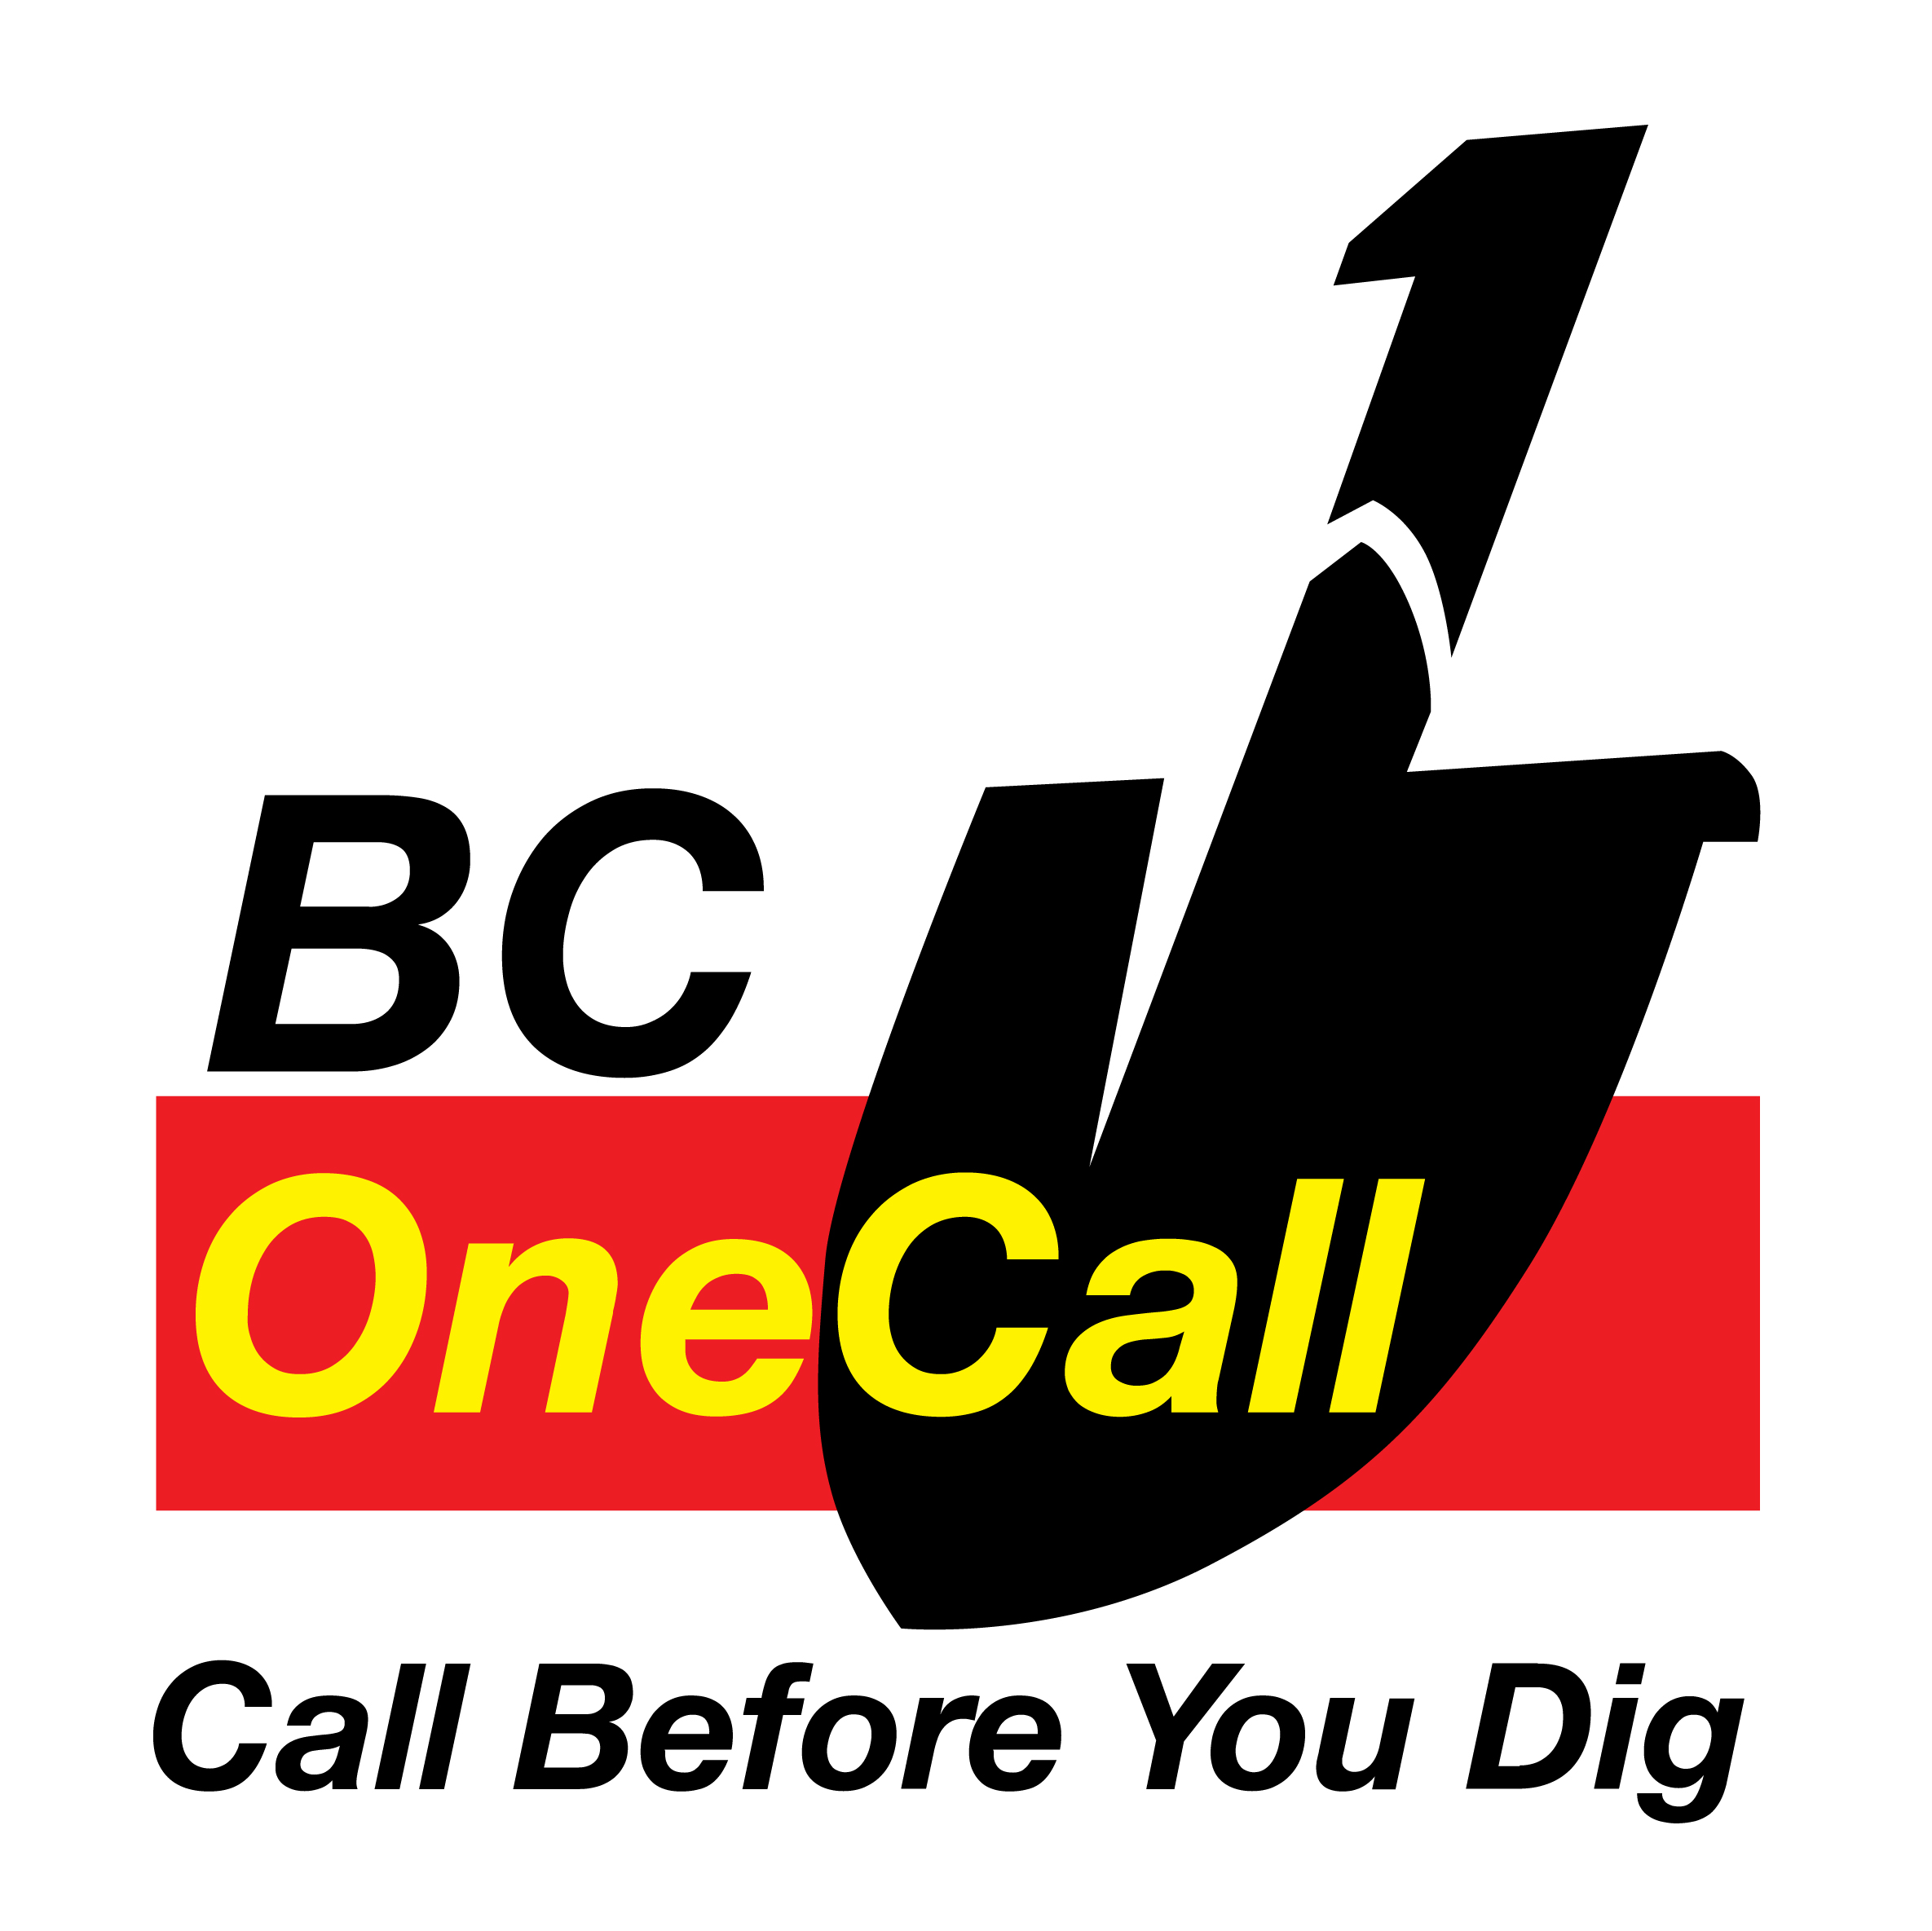 bc-one-call-vector-logo.jpg